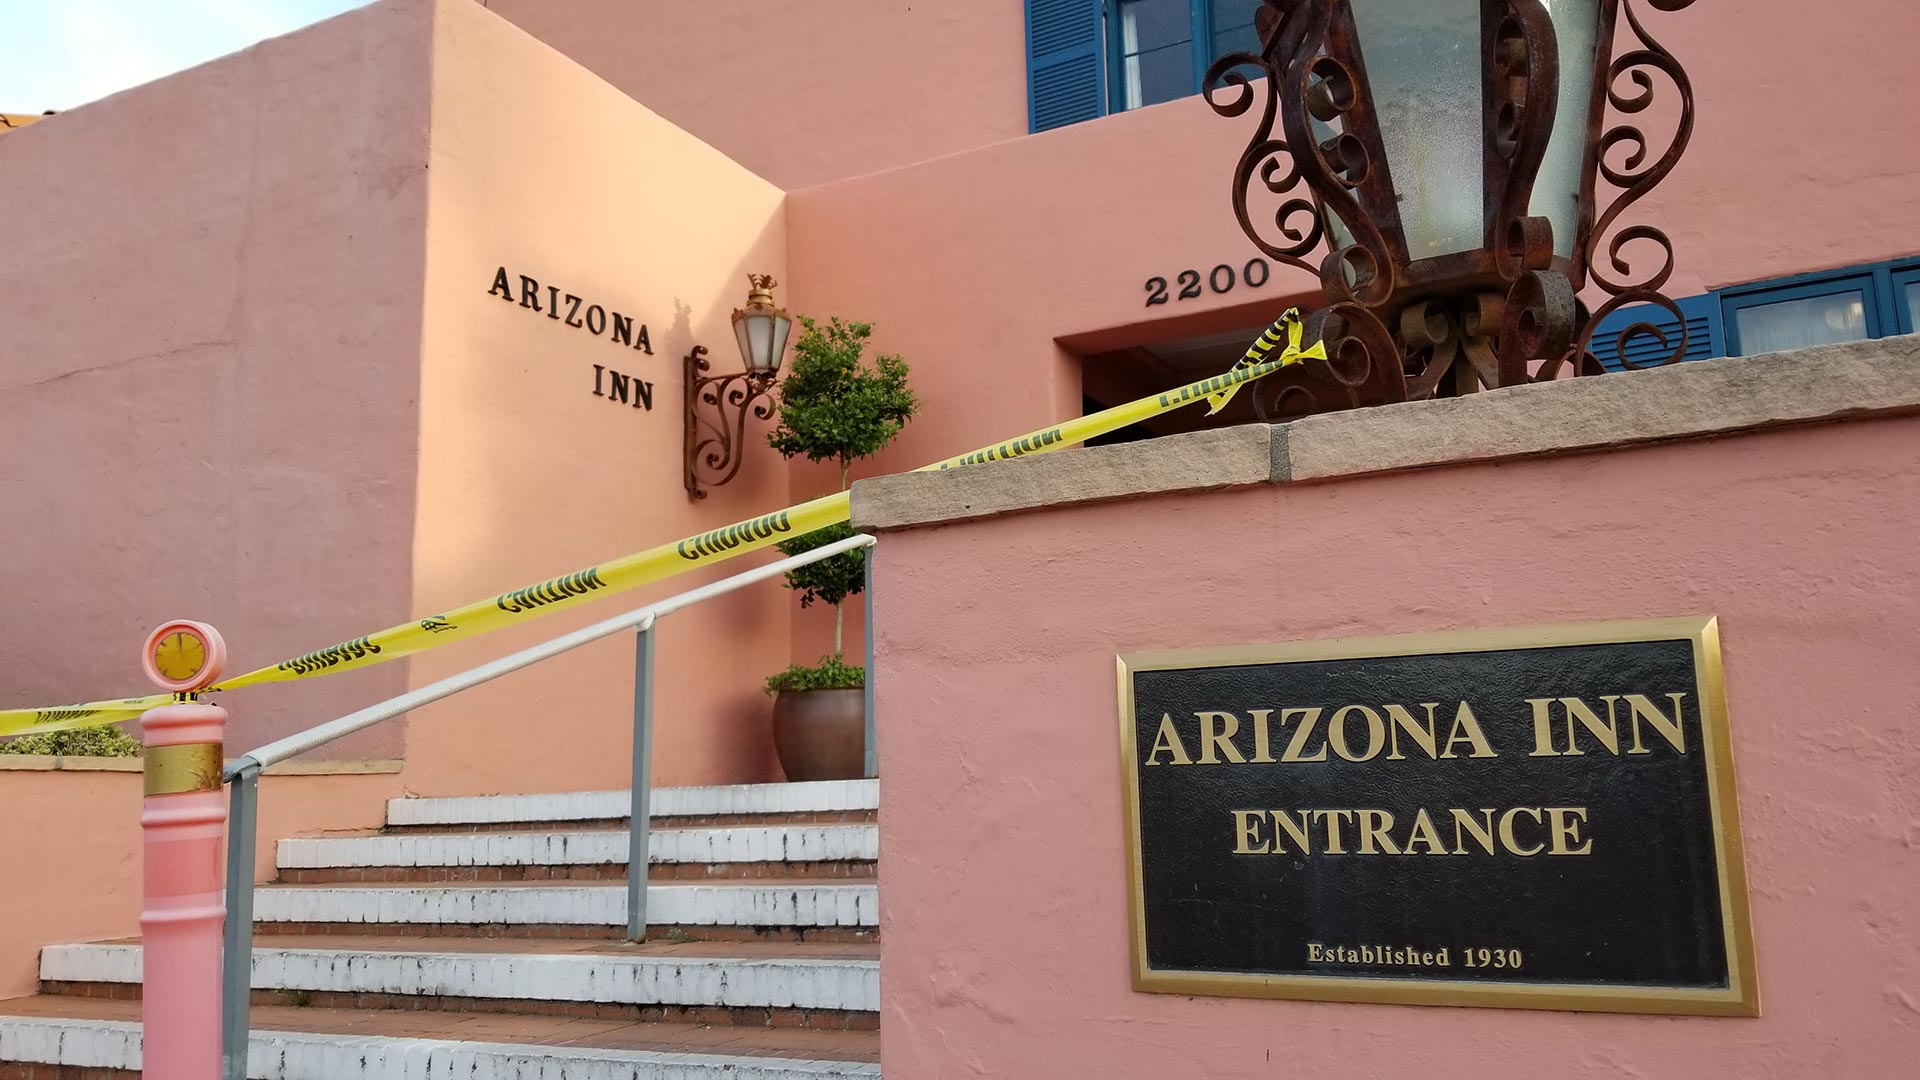 Yellow caution tape blocks the entrance to the Arizona Inn, which has temporarily closed as a precautionary measure against coronavirus. From March 16, 2020.